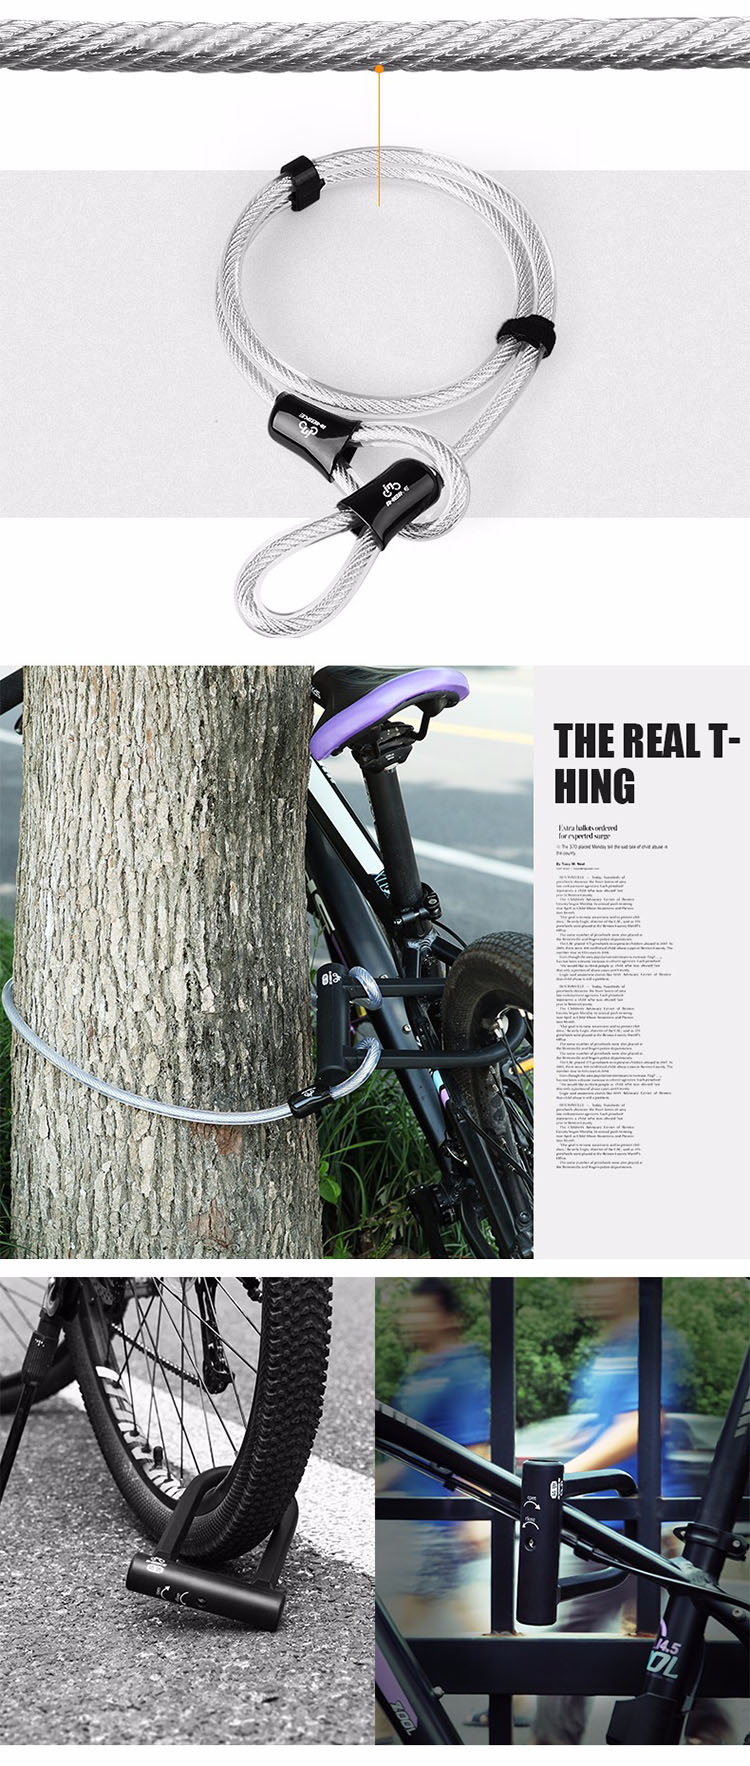 INBIKE Hight Safety Durable bike U Lock with Cable Lock